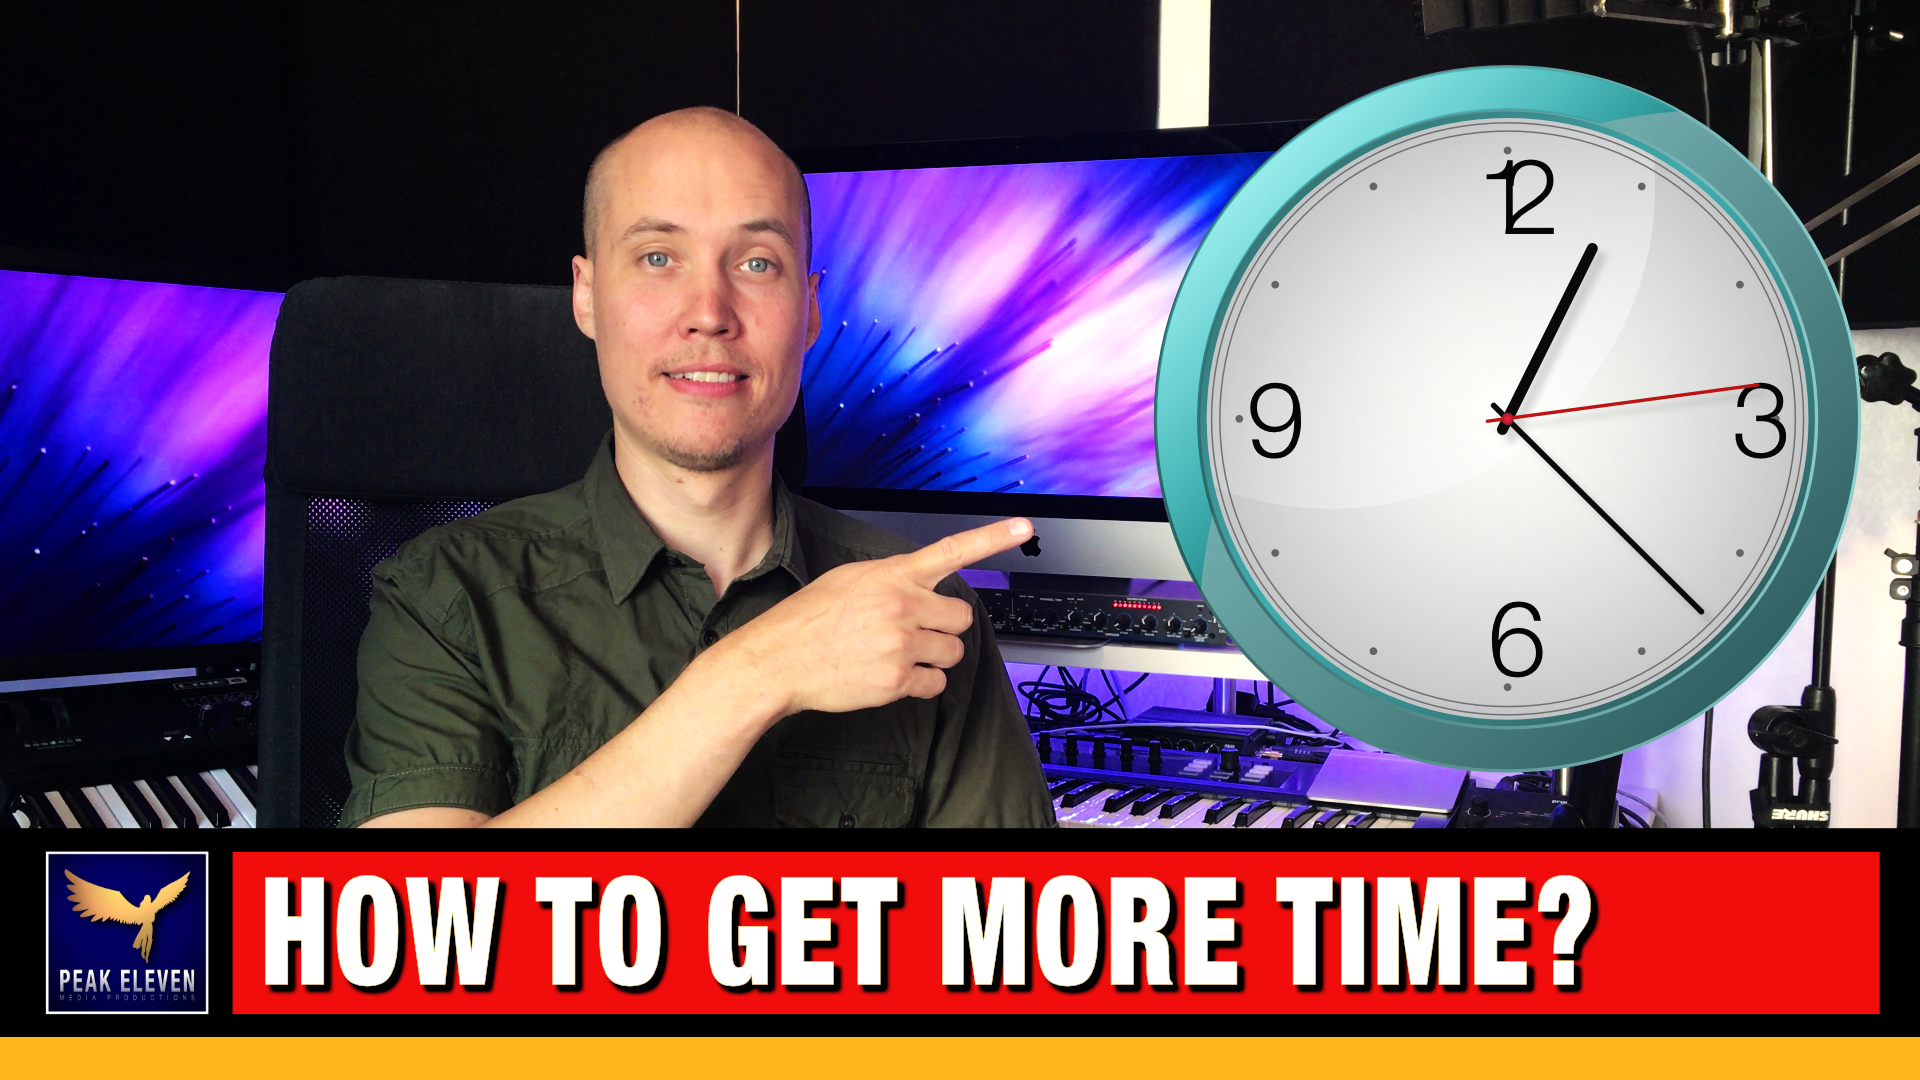 More Time for your Composer Journey